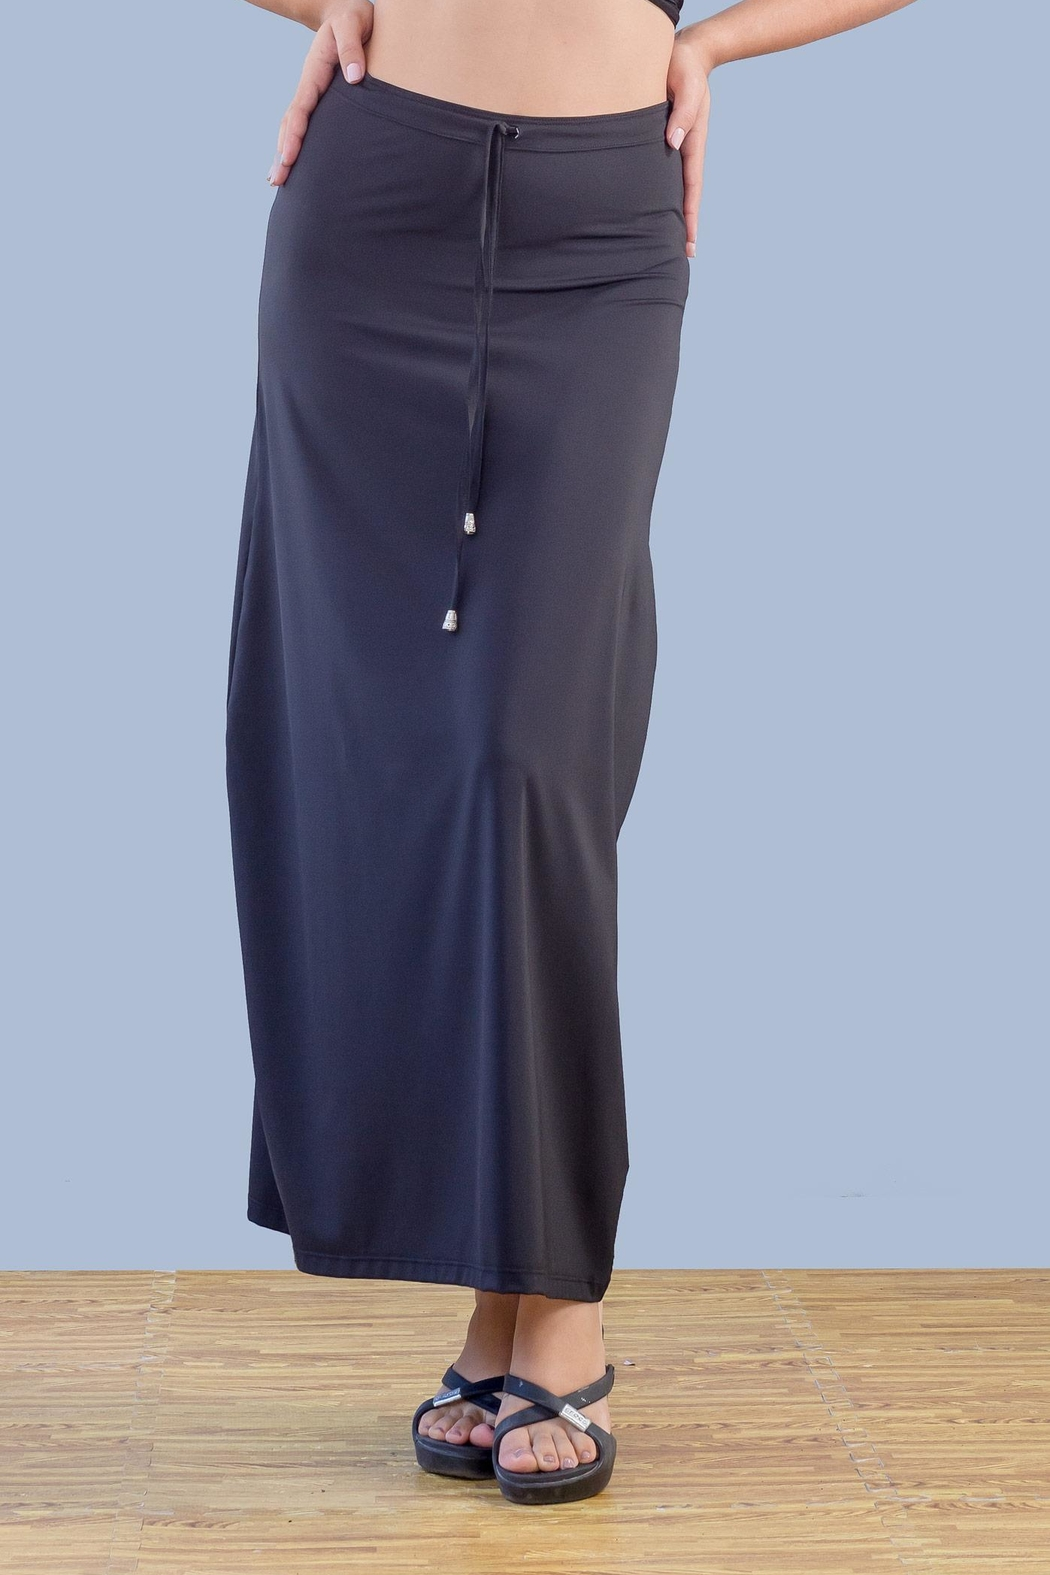 Myskova Tori Long Skirt - Main Image